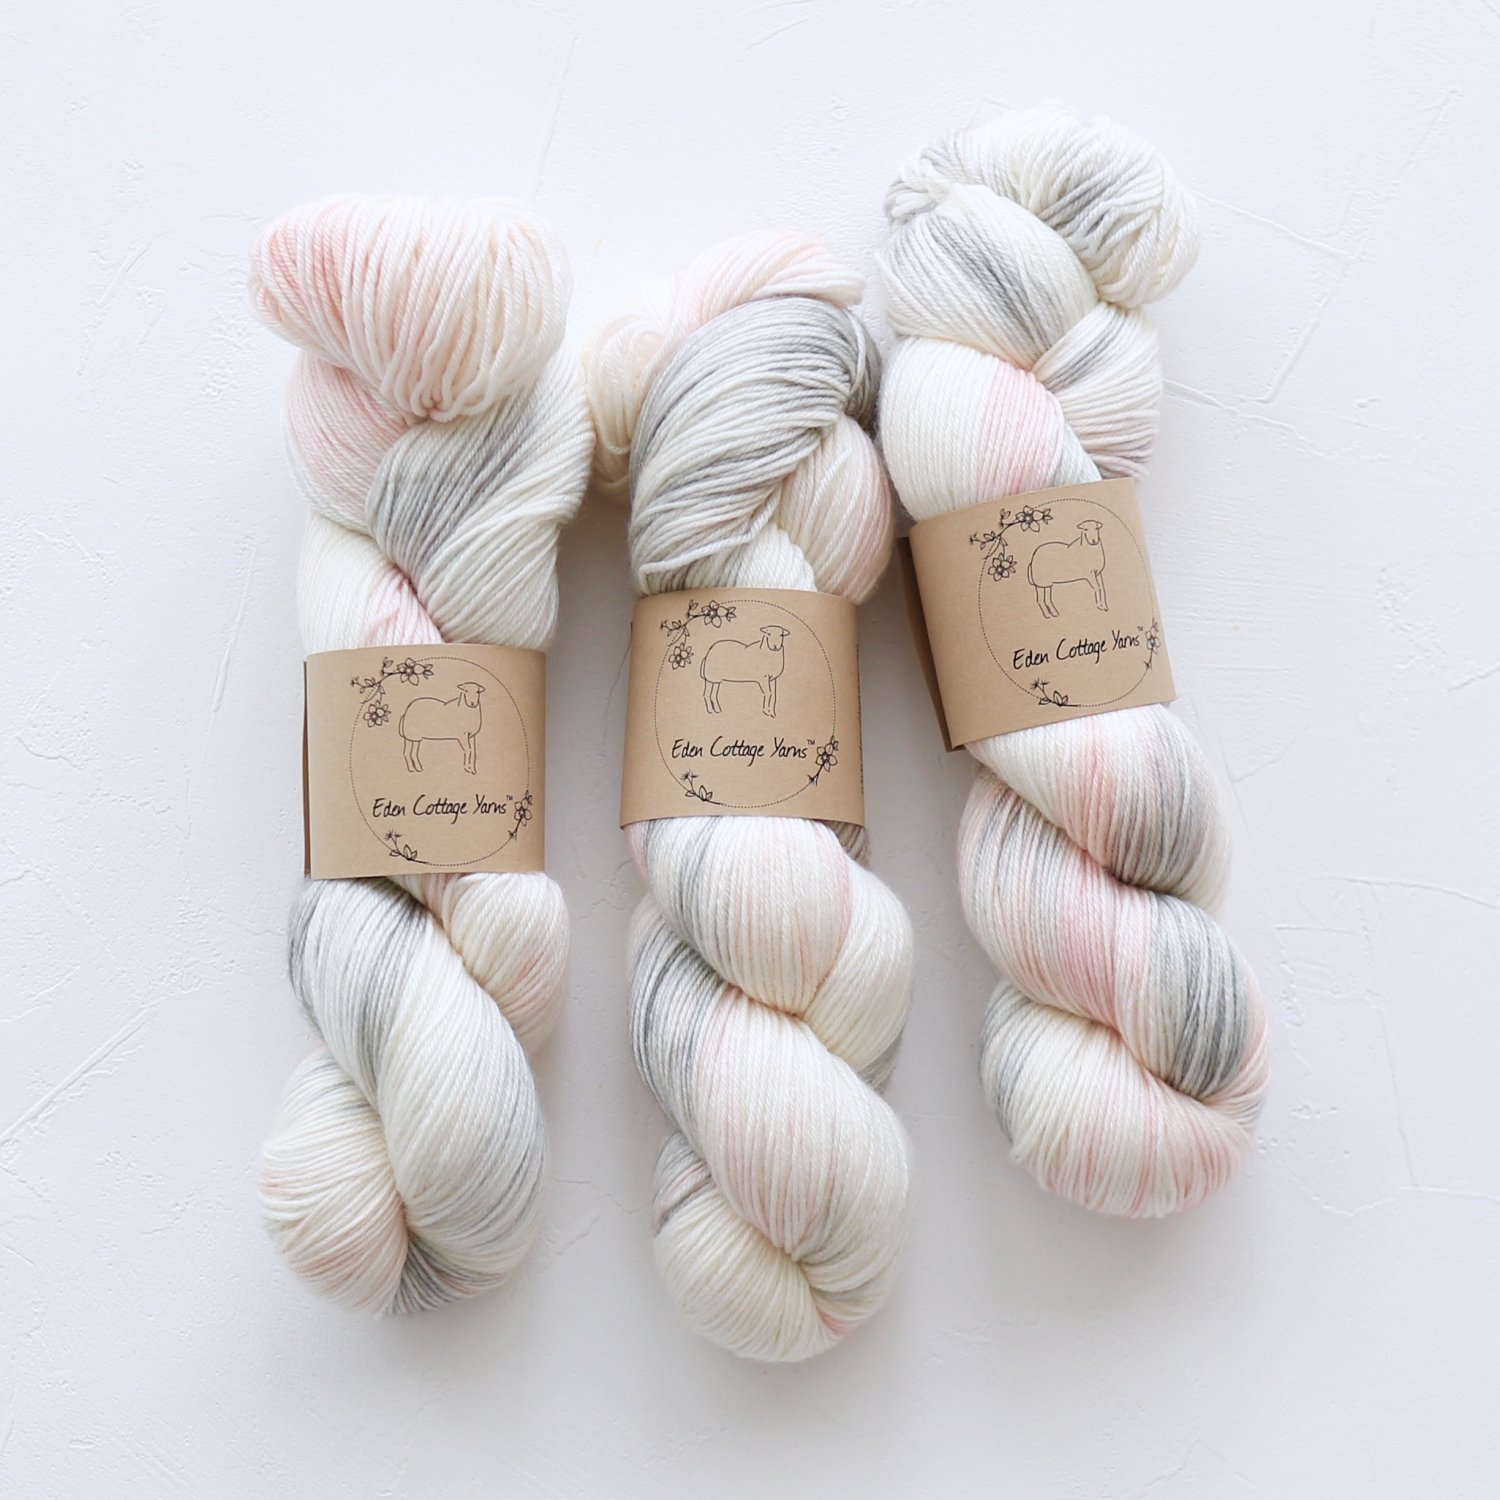 【Eden Cottage Yarns】<br>Pendle 4ply<br>Foggy Daybreak